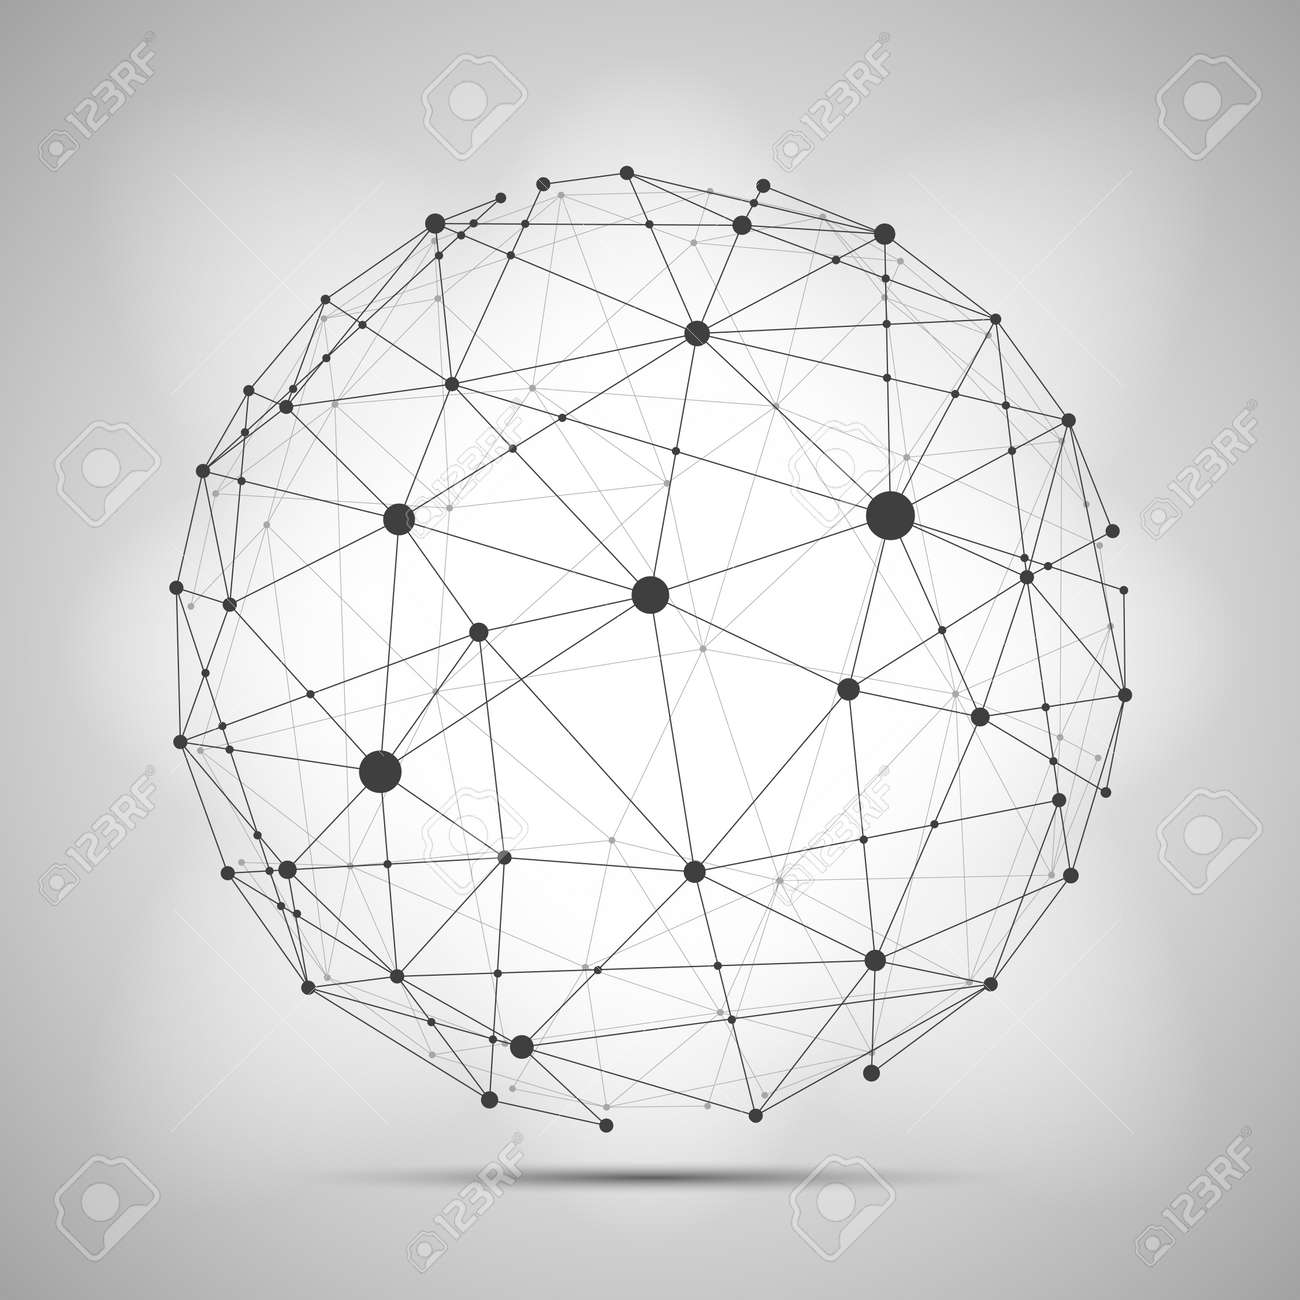 Vector wireframe connecting earth sphere. Globe connection concept. Globe structure connect, illustration of globe network - 168013305